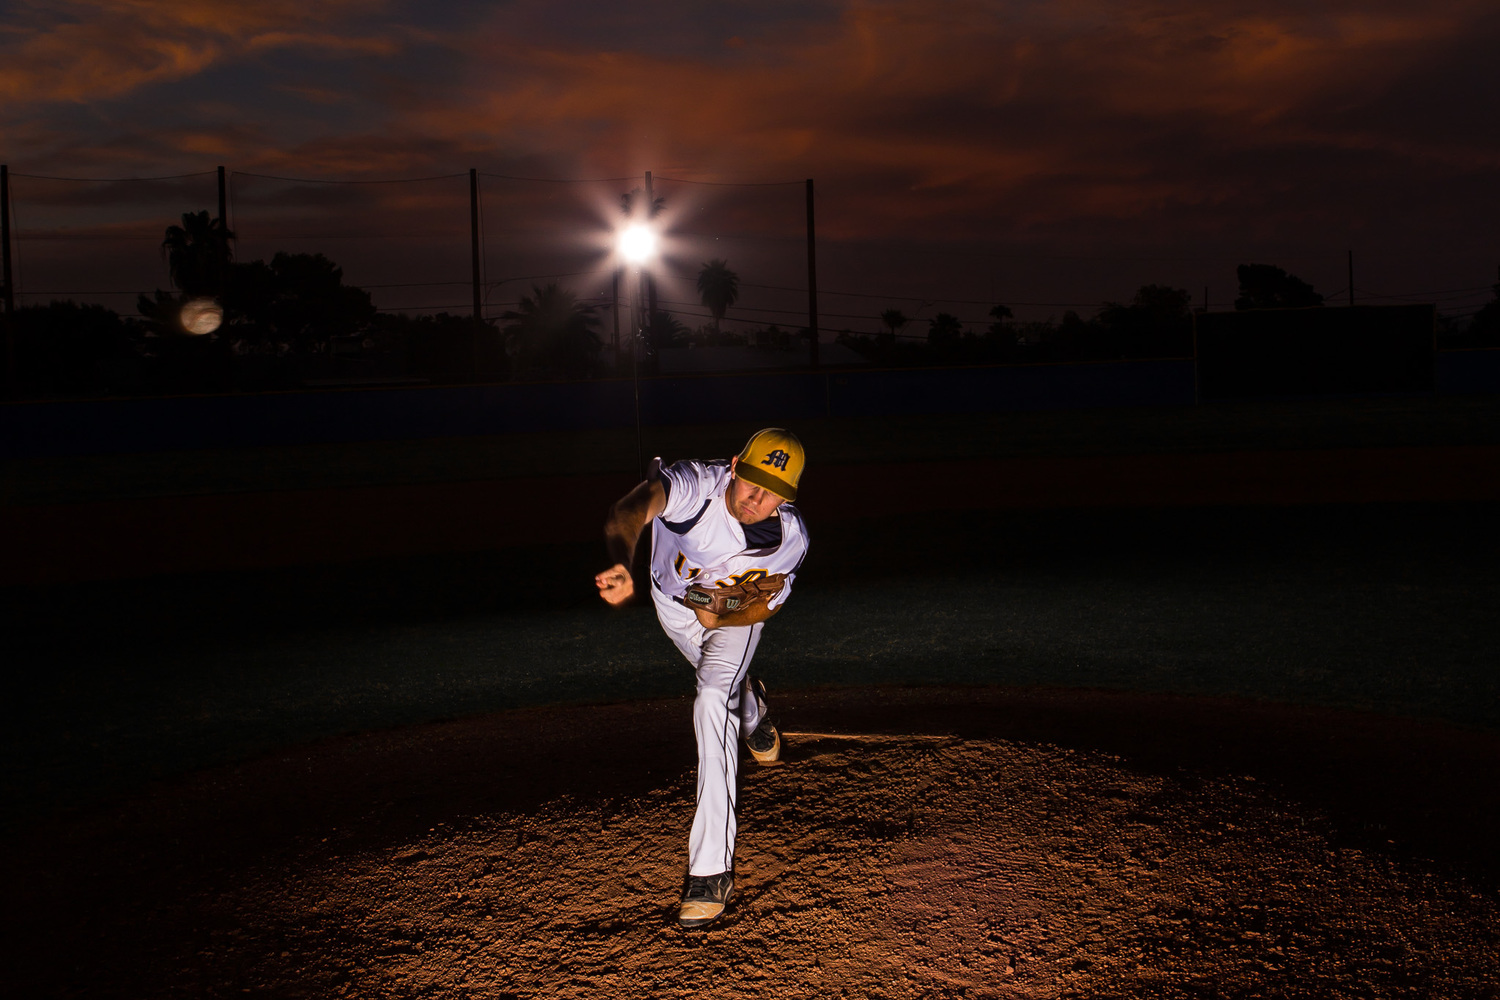 Trevor was a three year varsity pitcher and has great throwing mechanics. This image was taken after sunset and it was nearly dark. I love the dramatic skiesArizona sunsets can create.I used two alien bee strobes to create this image and freeze the motion. It took quite a few attempts to get the ball in the shot but eventually we got it!